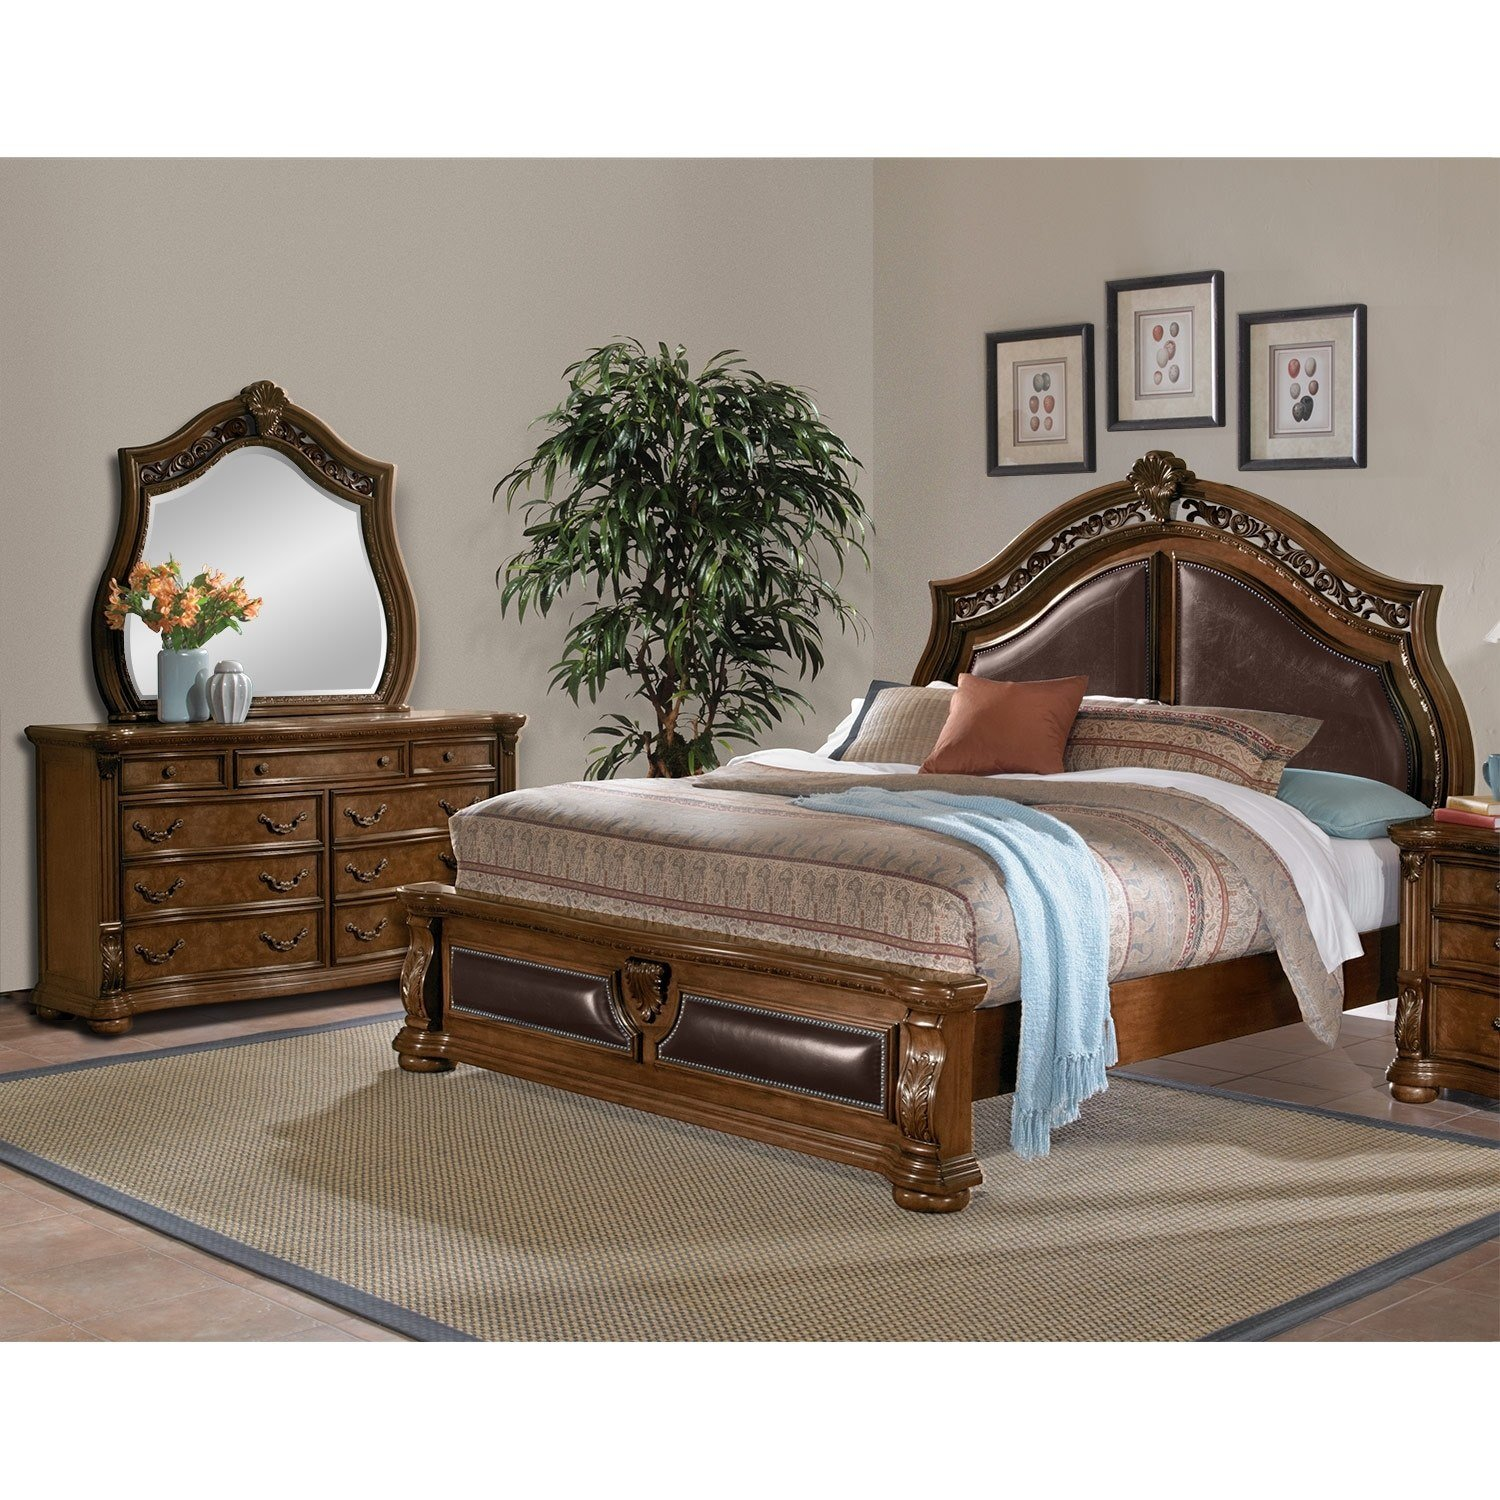 Best Morocco 5 Piece King Bedroom Set Pecan Value City With Pictures